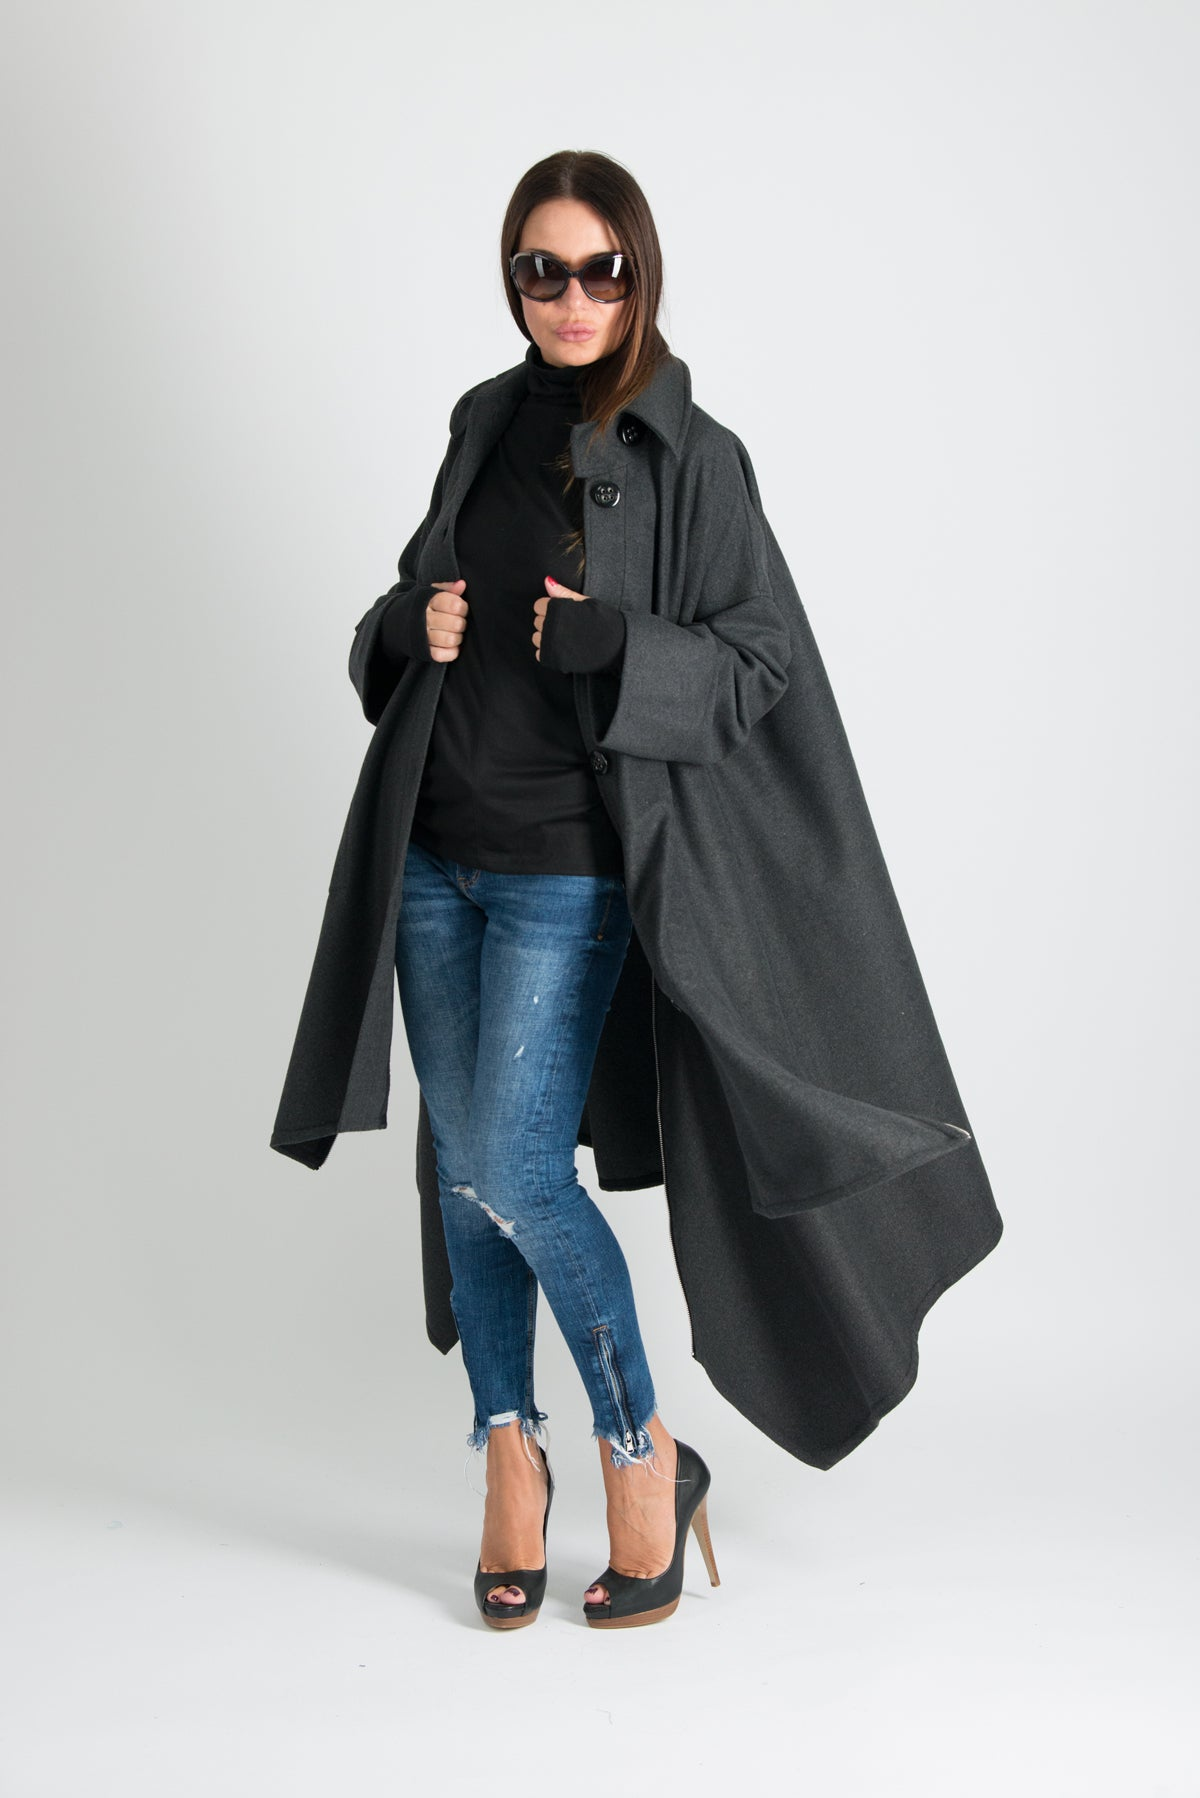 Dark grey Winter women Coat, Cashmere Coat, Coats